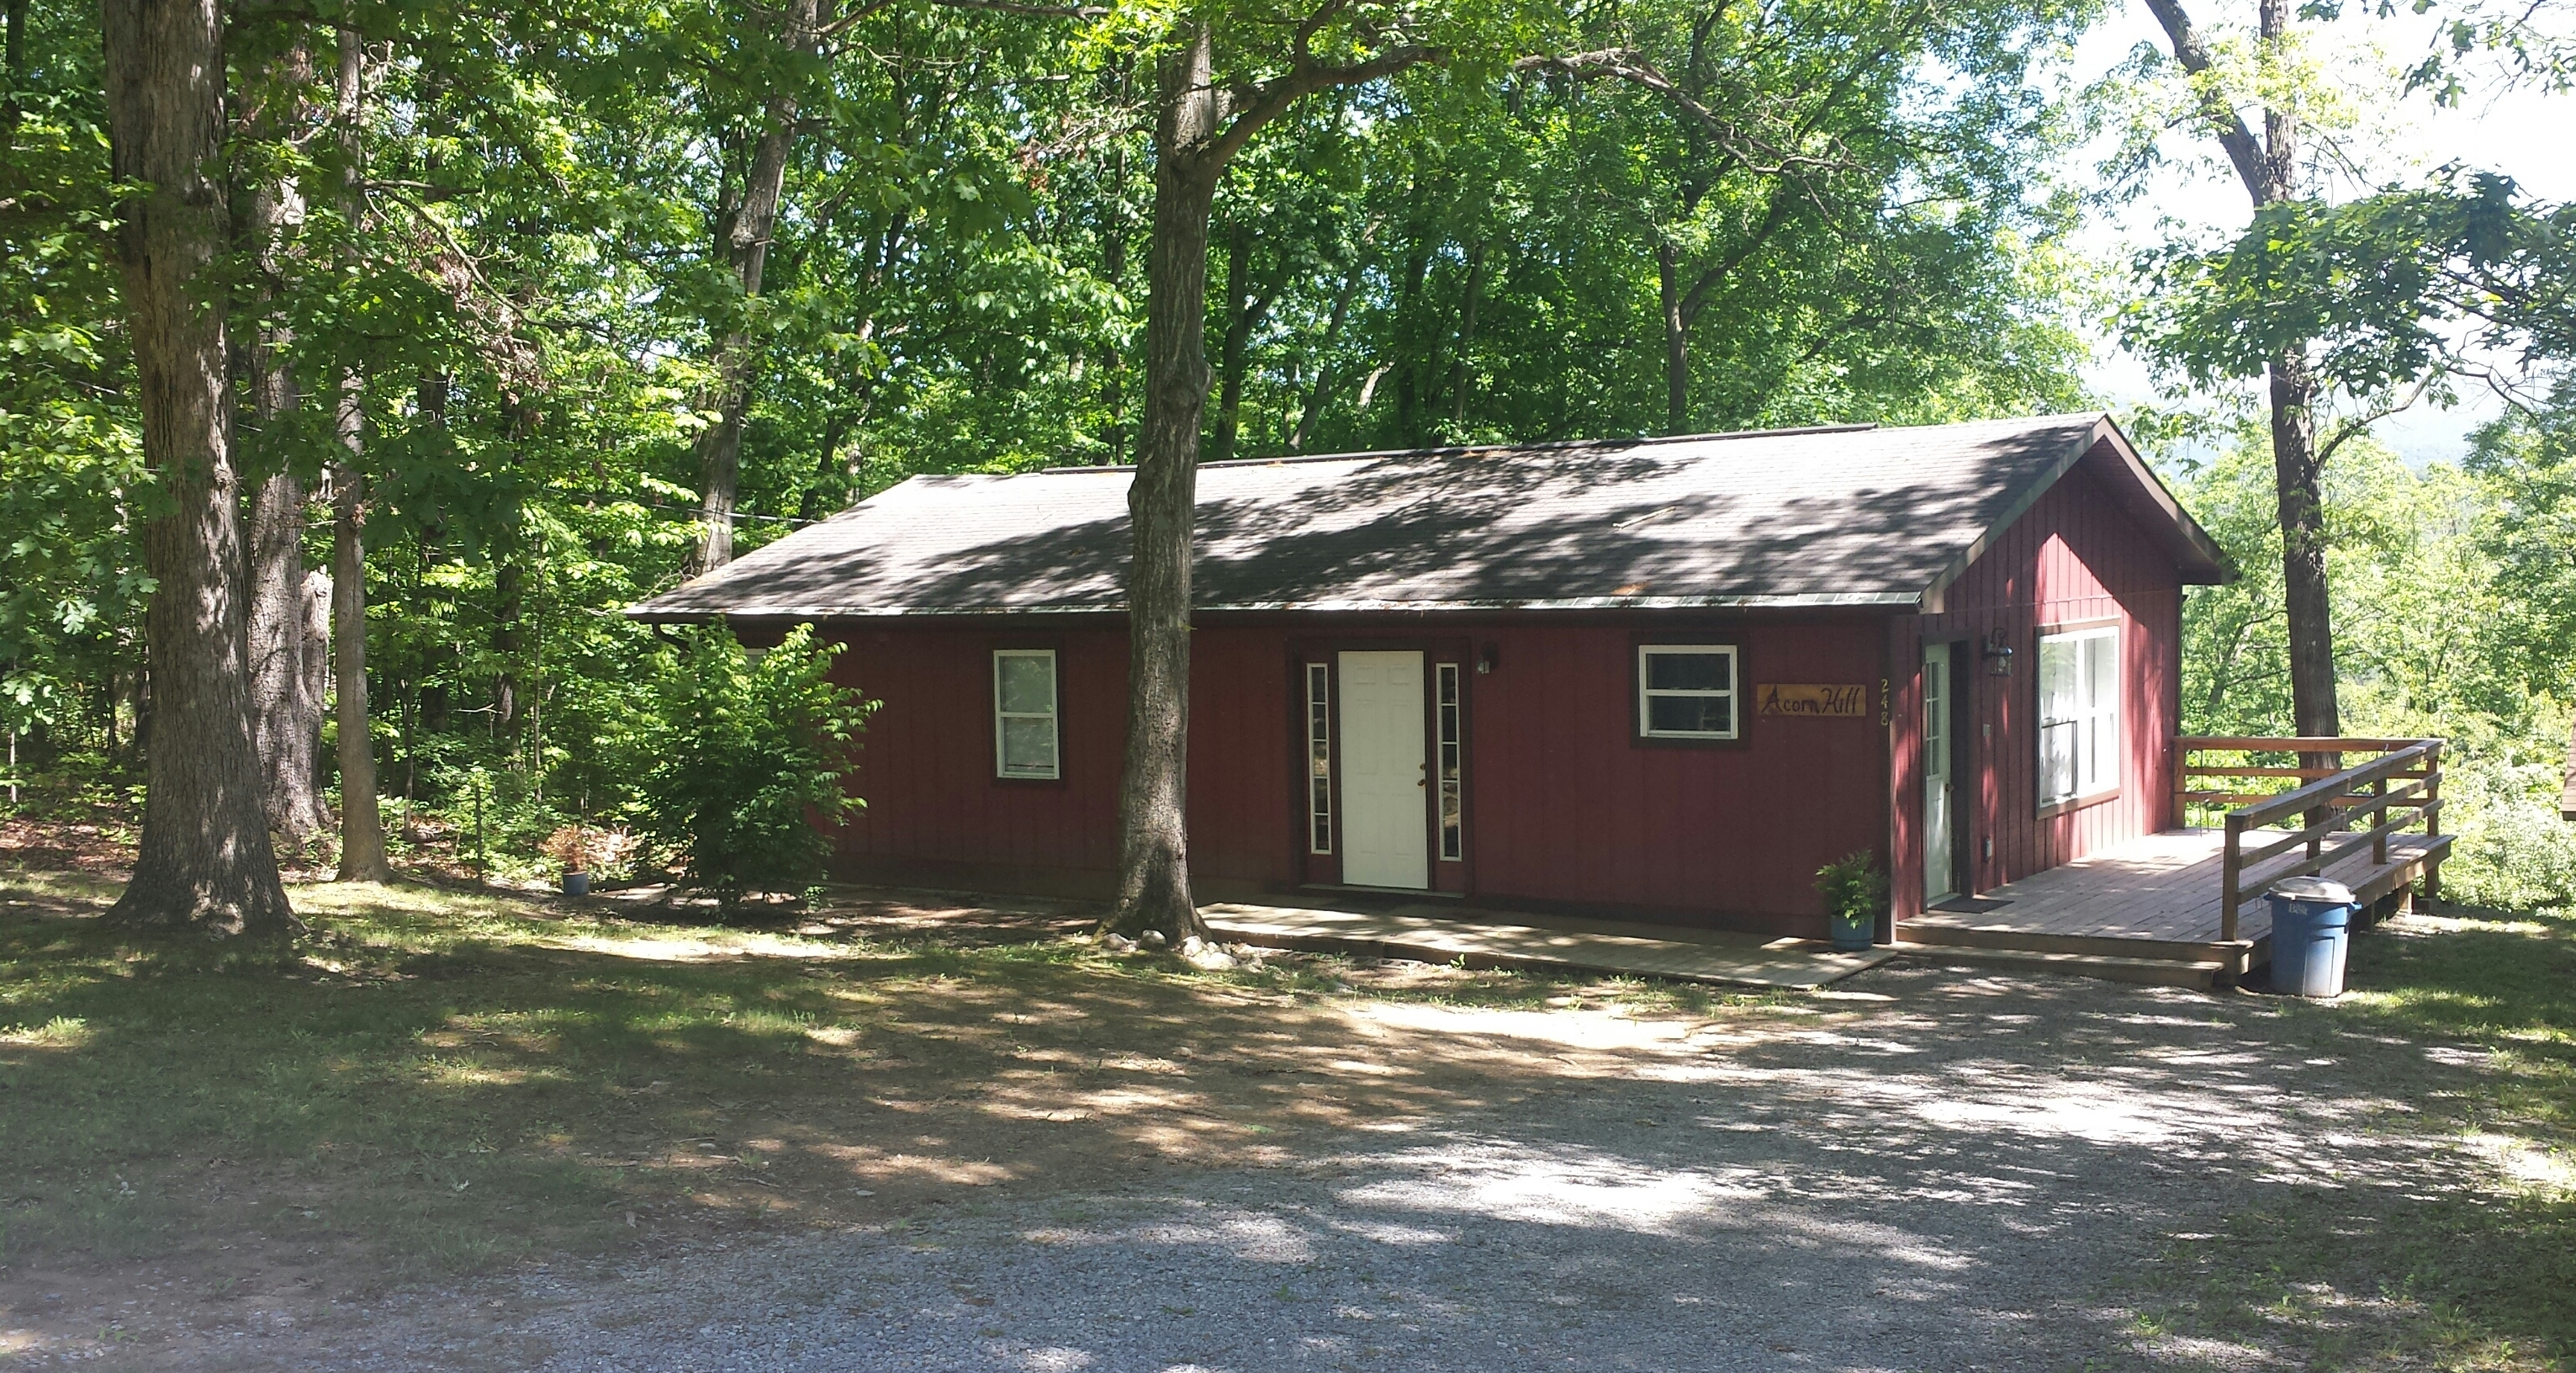 Camping cabin in washington d c for Nearby campgrounds with cabins